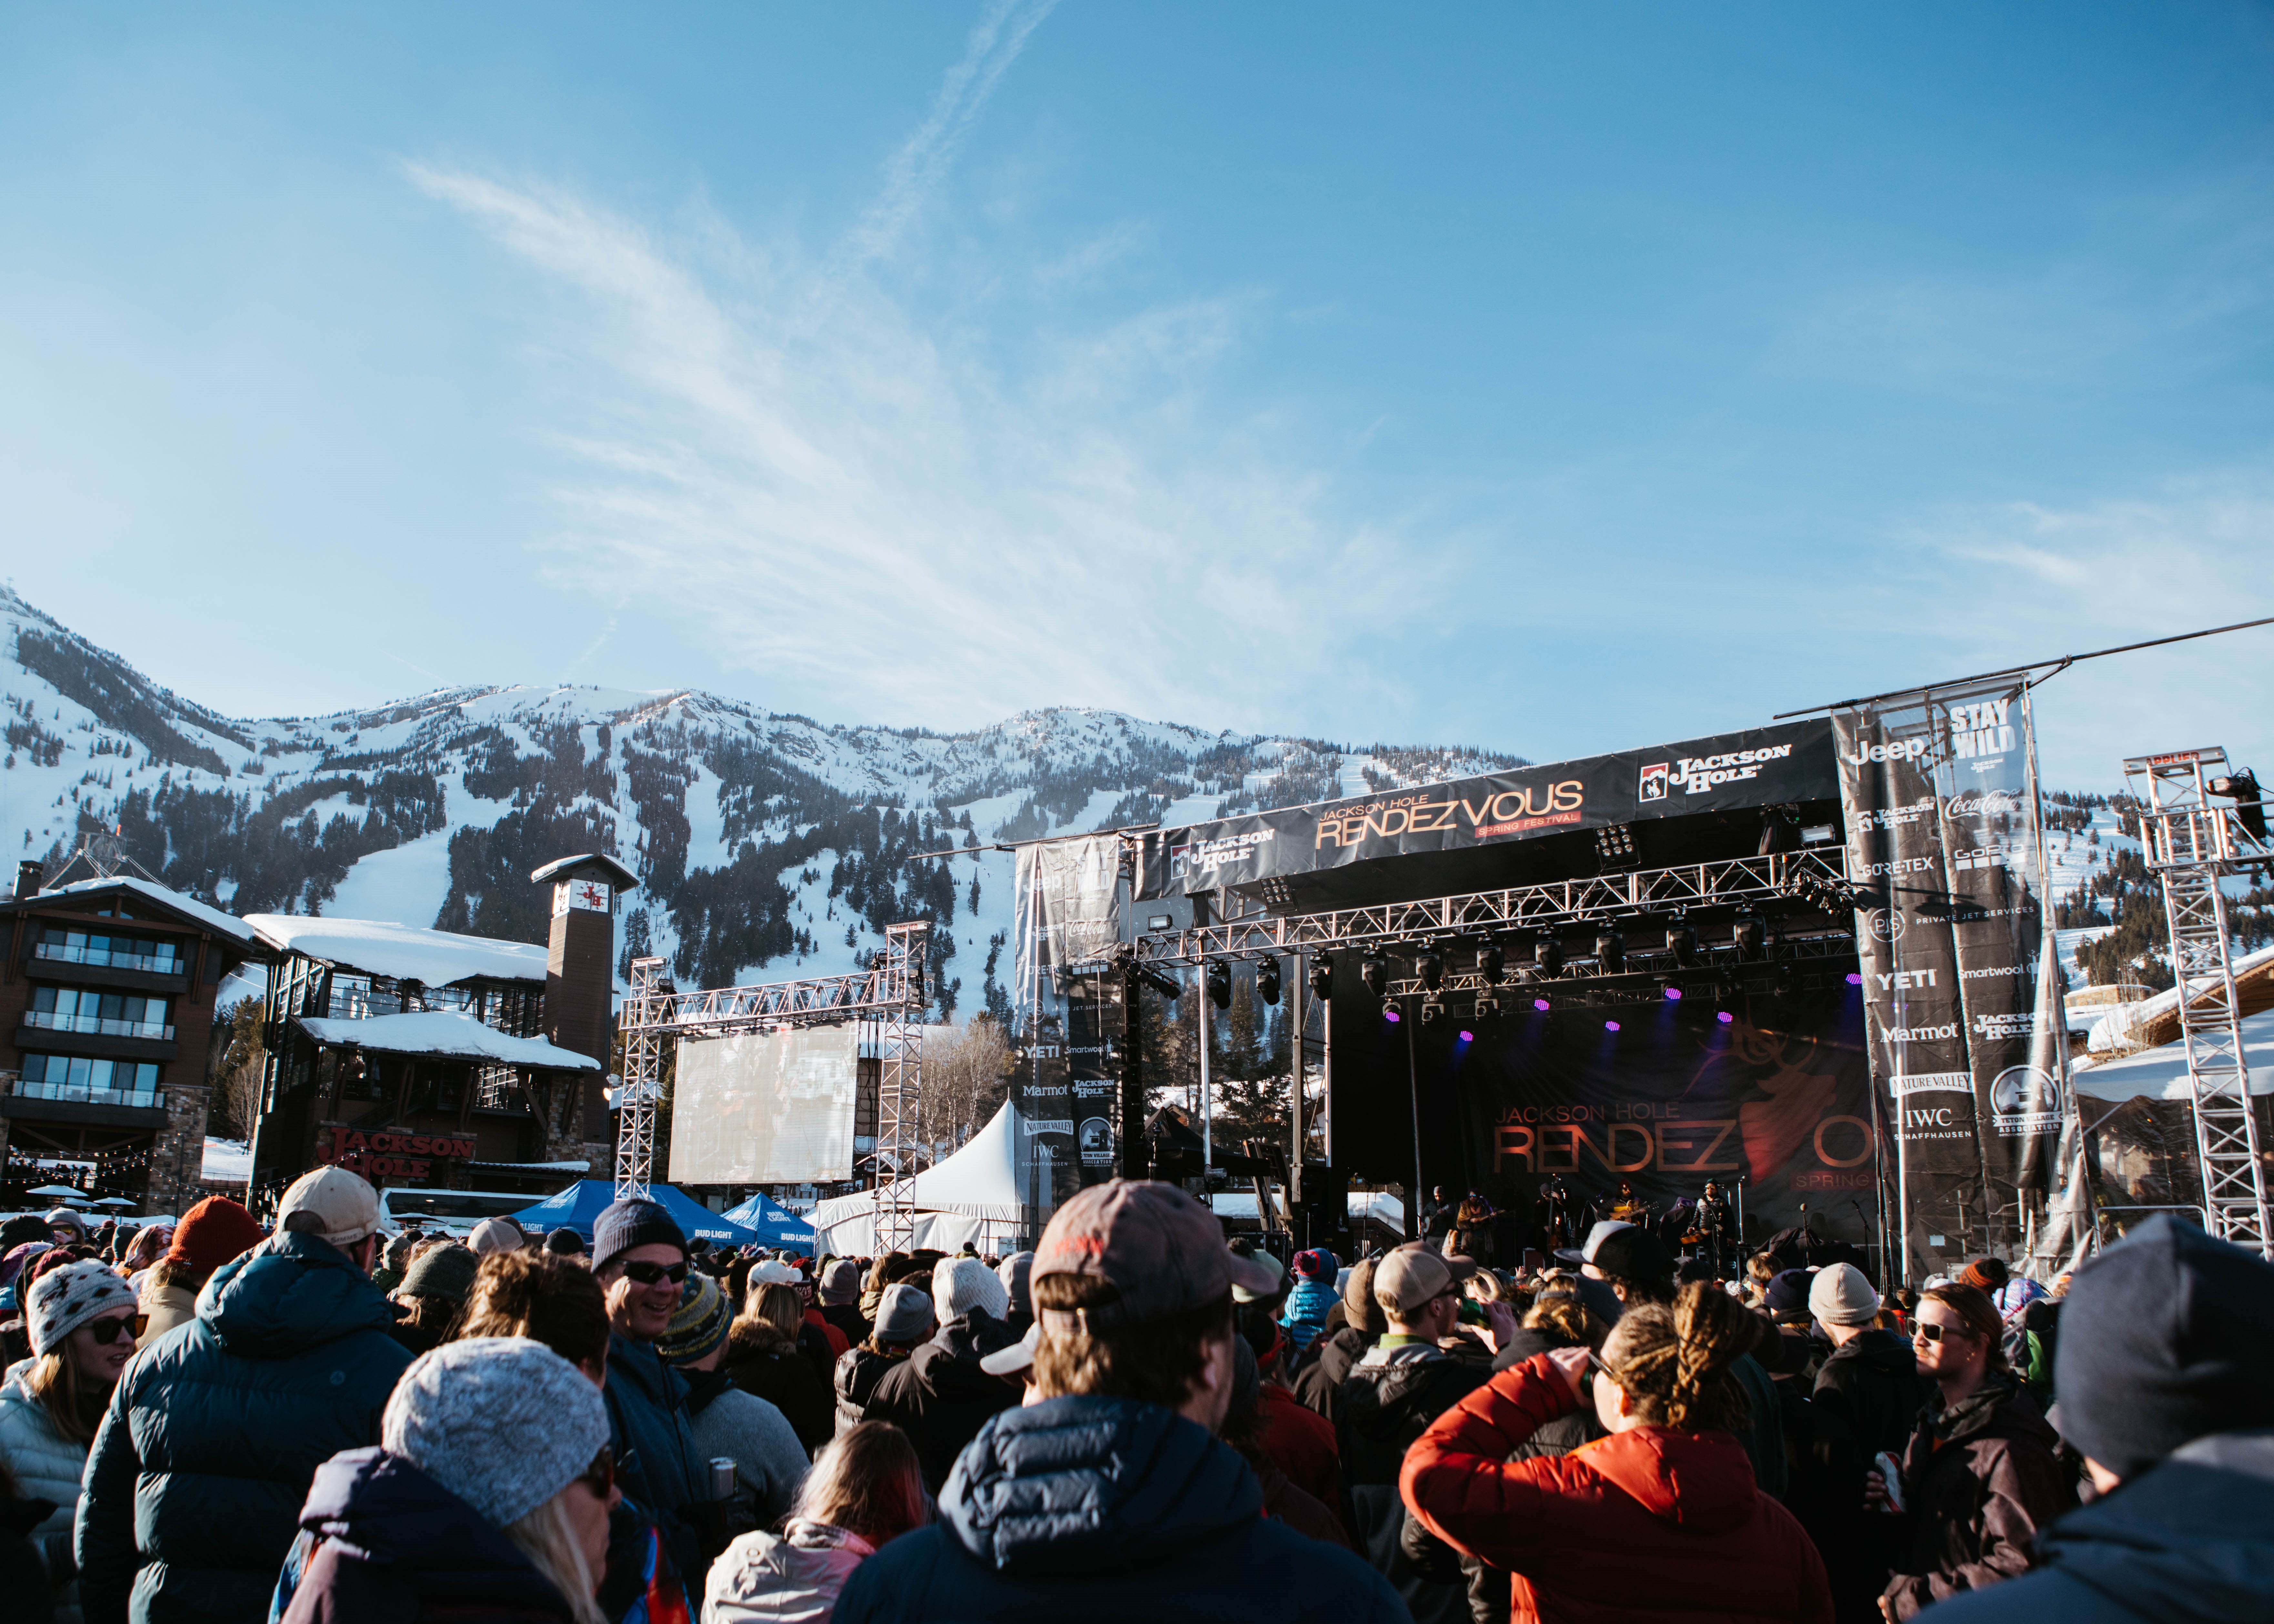 Festival stage set against the big and beautiful Rendezvous Mountain at the base of Teton Village, WY